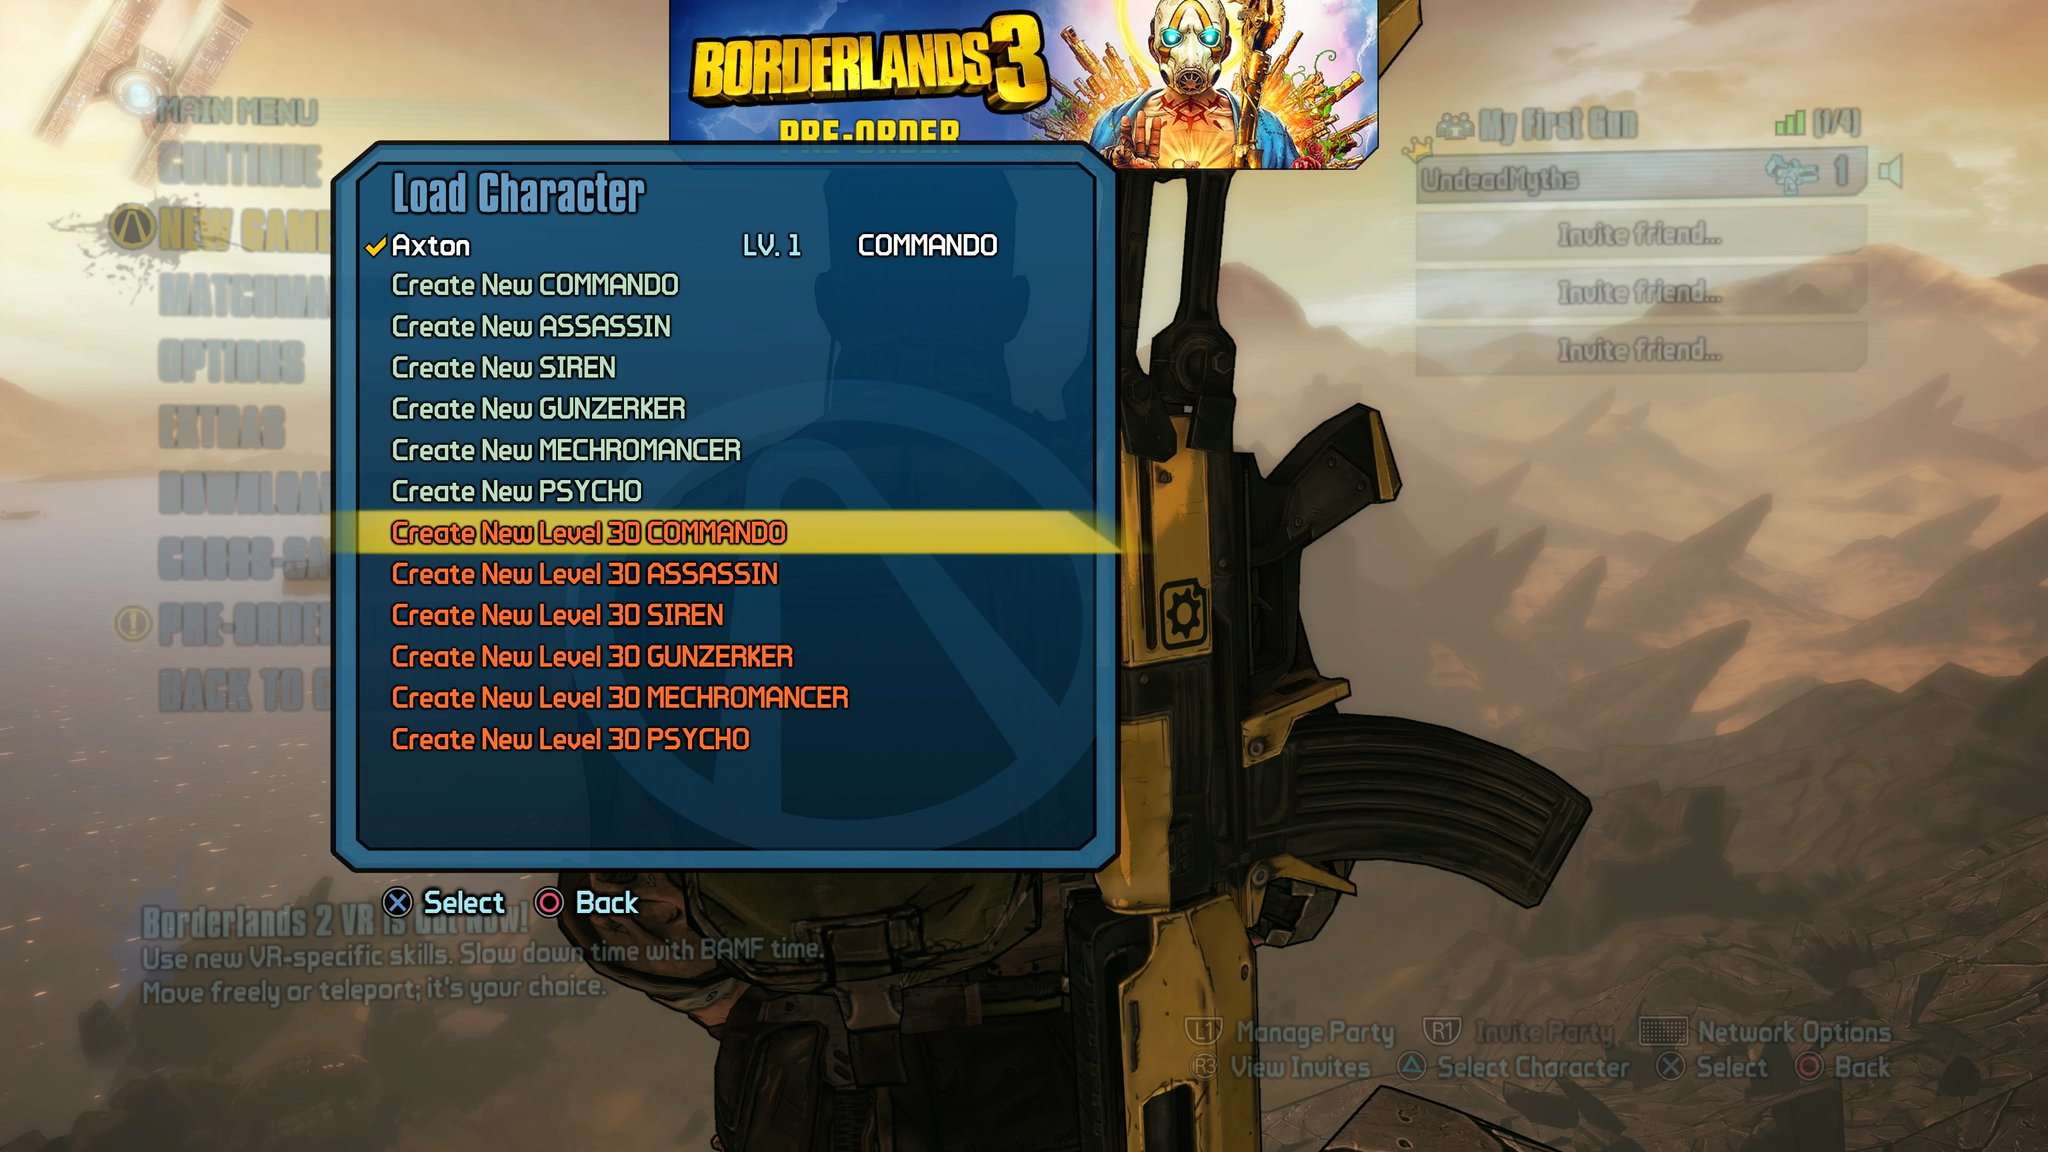 Borderlands 2 New DLC - How to Access the Borderlands 2